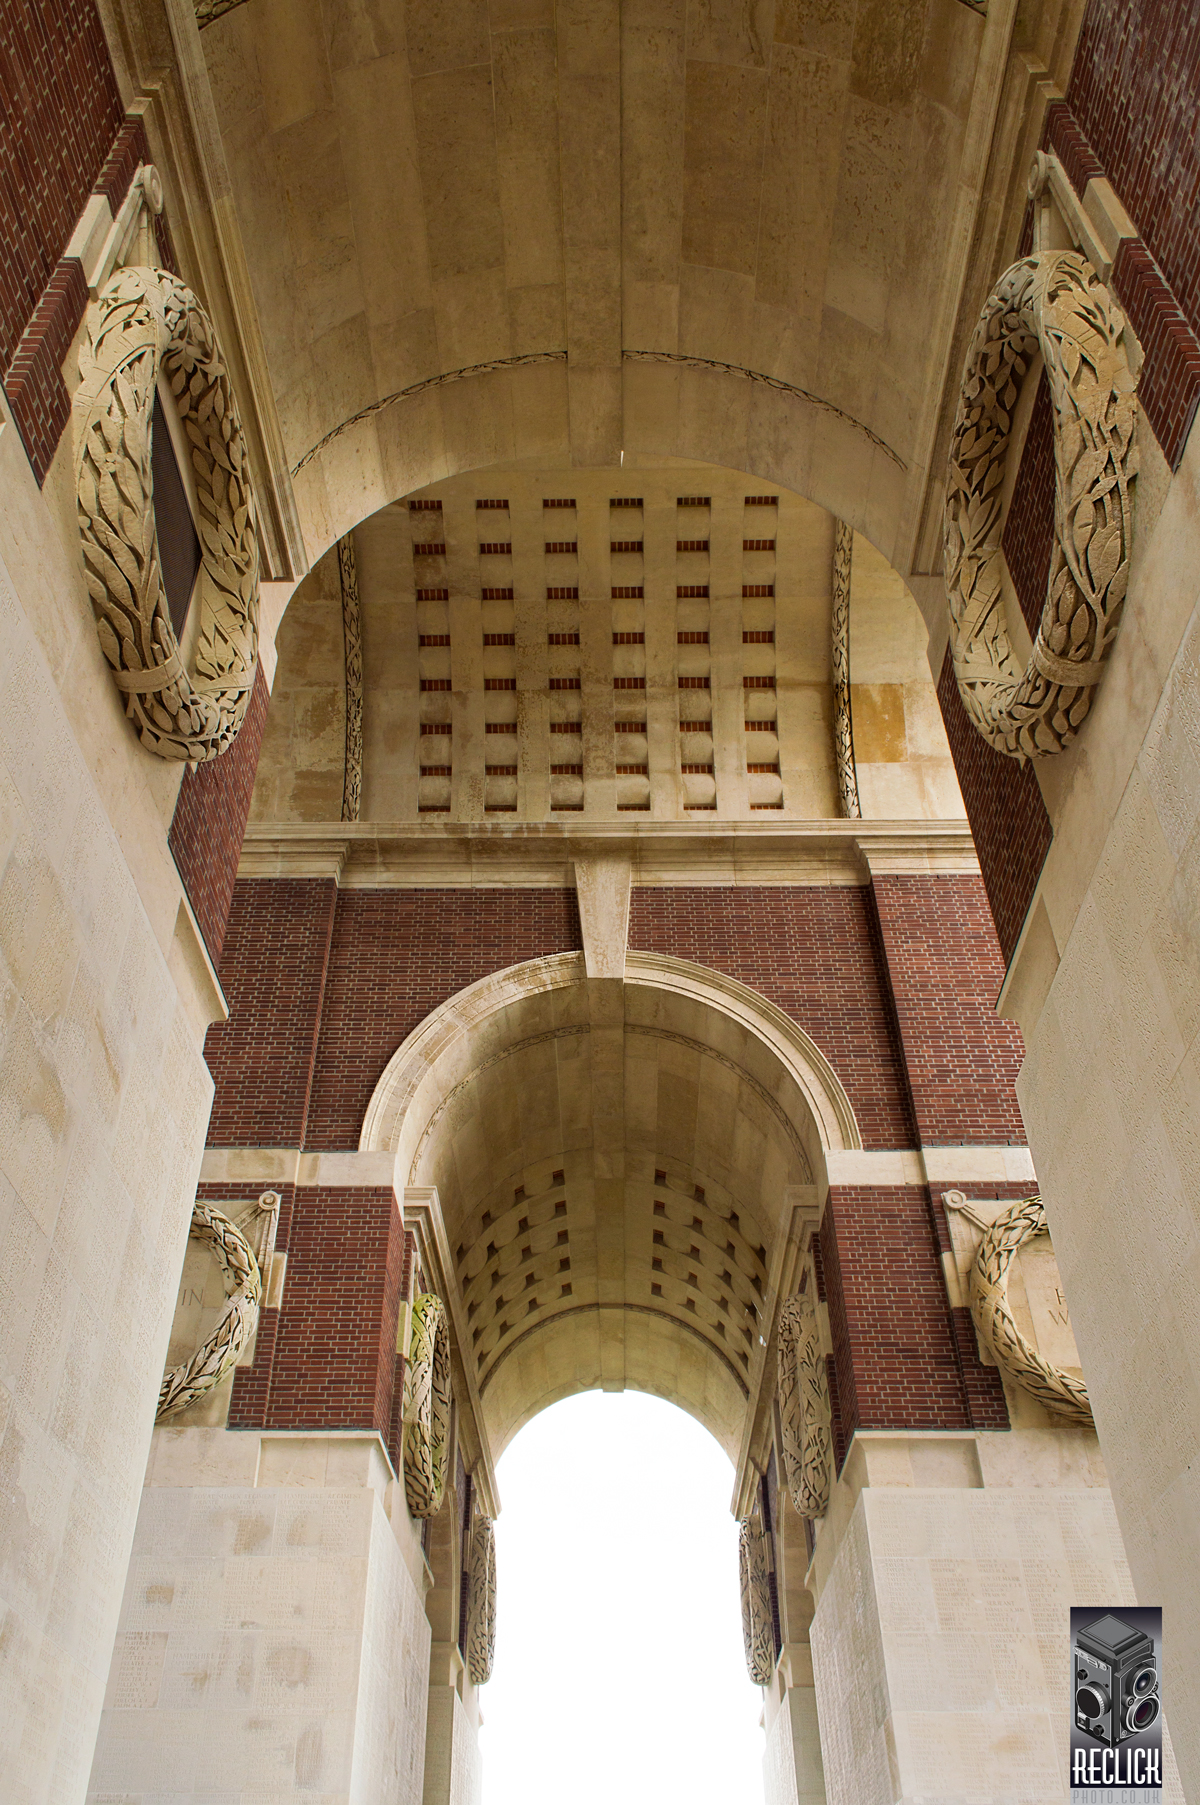 Thiepval, memorial, monument, architecture, structure, France, WWI, First World War, Battle of the Somme, Somme, Edwin Lutyens, battlefield, photography, photograph, travel, landmark, history, historic site, Nikon D3200.